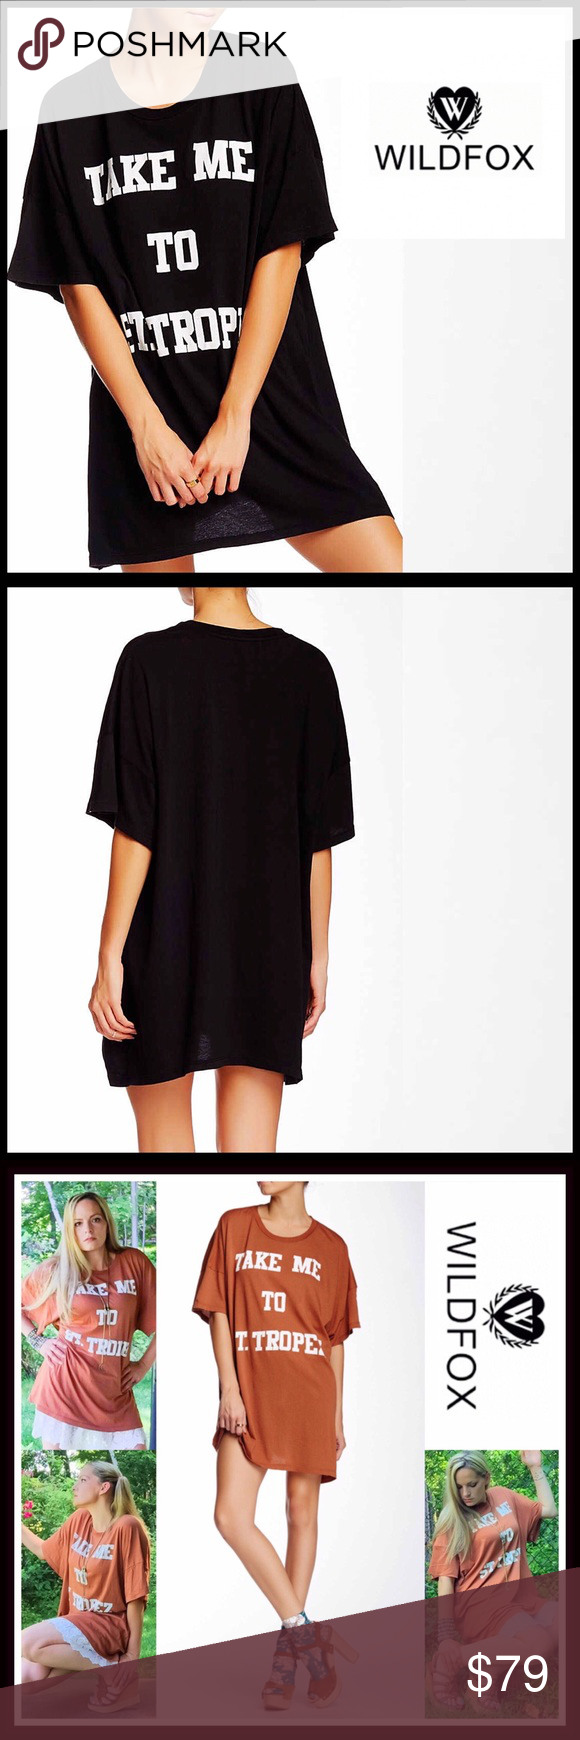 """WILDFOX Tunic TEE COVERUP Barefoot Tee Dress 💟 NEW WITH TAGS 💟 SIZING- S = Sizes 4-6 WILDFOX Tunic COVERUP Barefoot Tee Dress Retail Price: $98   * Super soft & comfy  * A tunic - Mini length; Approx 32""""L  * Scoop neck & elbow length sleeves  * Graphic print on front,,'Take Me To St. Tropez';A purposely subtly distressed/'washed' fabric  * A relaxed & oversized silhouette   Fabric: 100% Cotton, Made in USA  Color: Black   Item# Shirt dress 🚫No Trades🚫 ✅ Offers Considered*✅  *Please use…"""